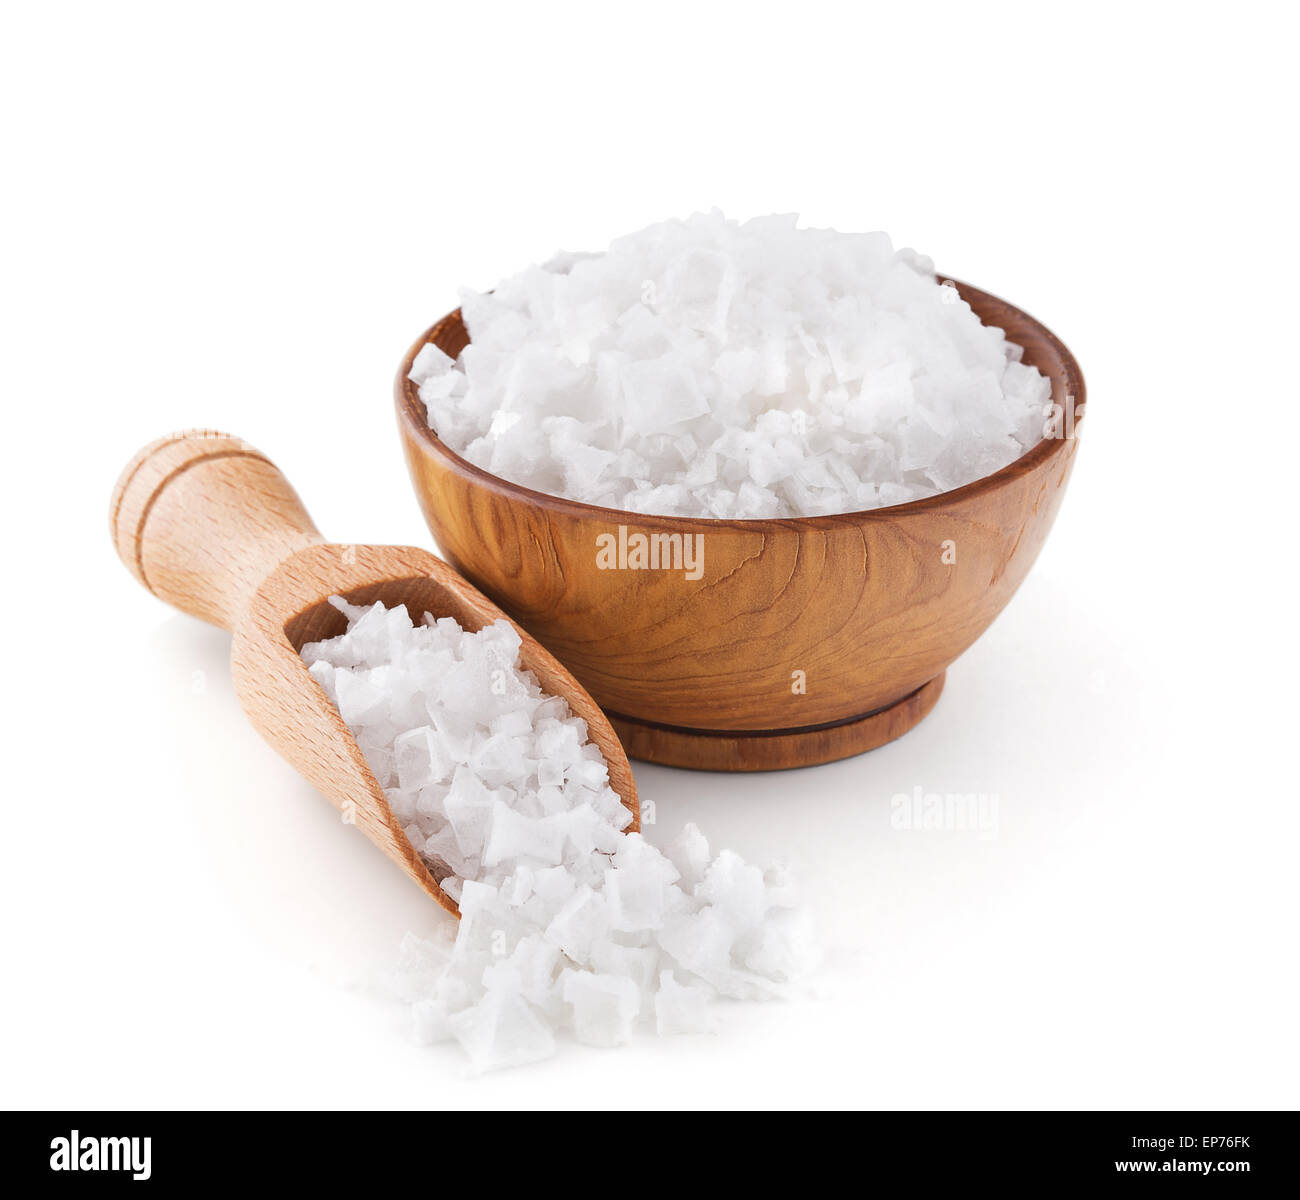 Cyprus sea salt flakes in a wooden bowl - Stock Image